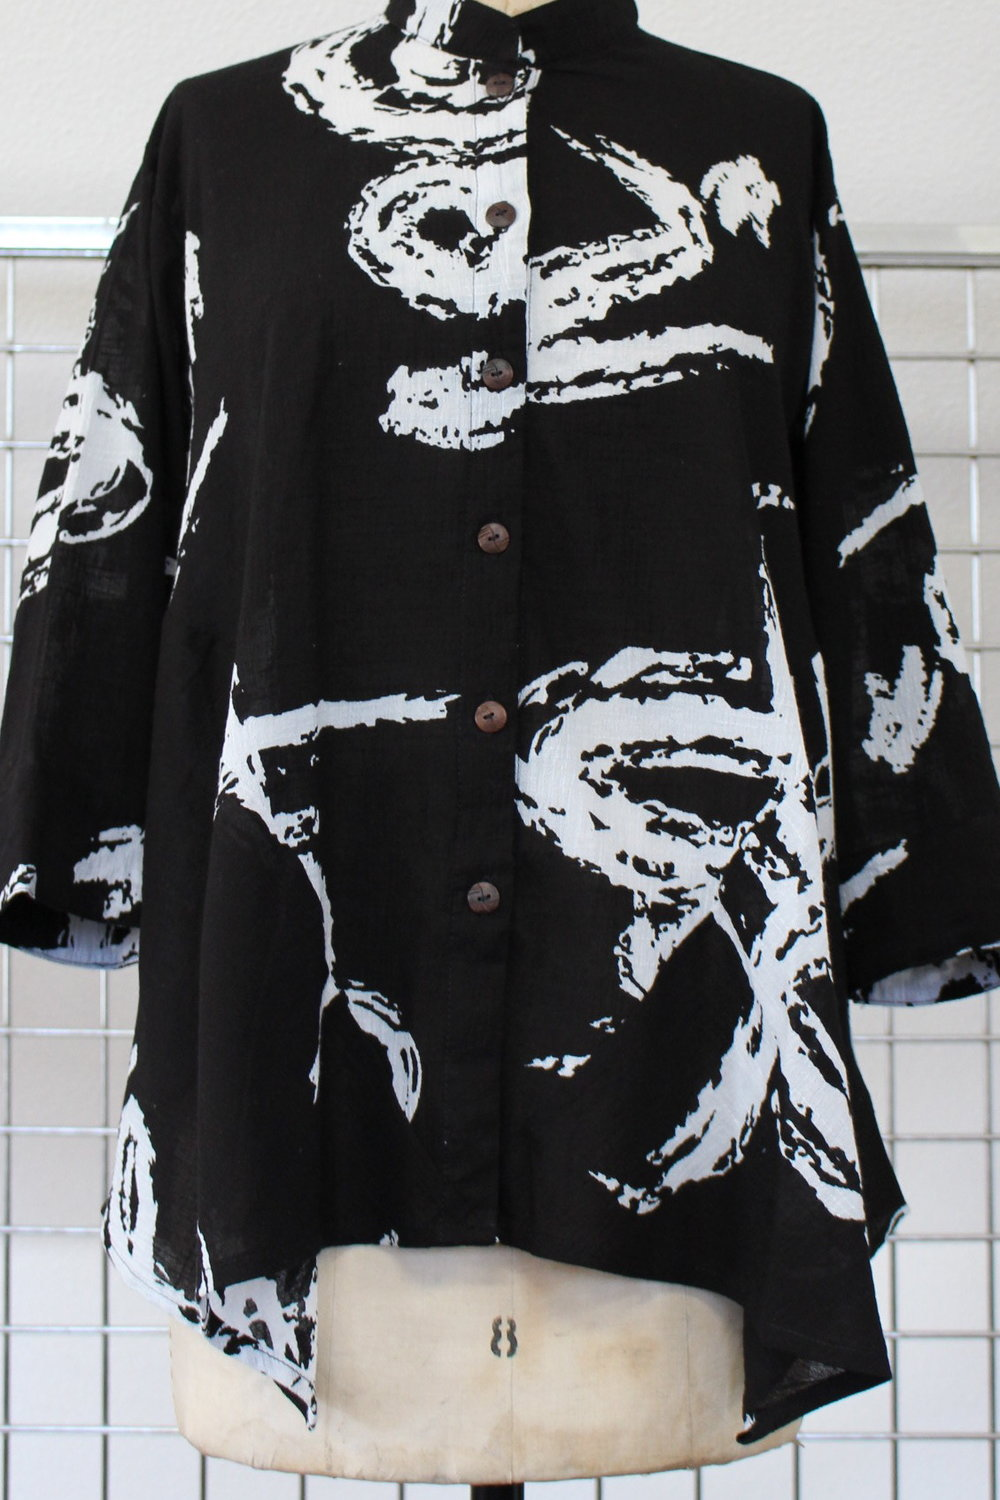 HA - 177   Mao Collar Jacket      S/MM/L   XL       Black